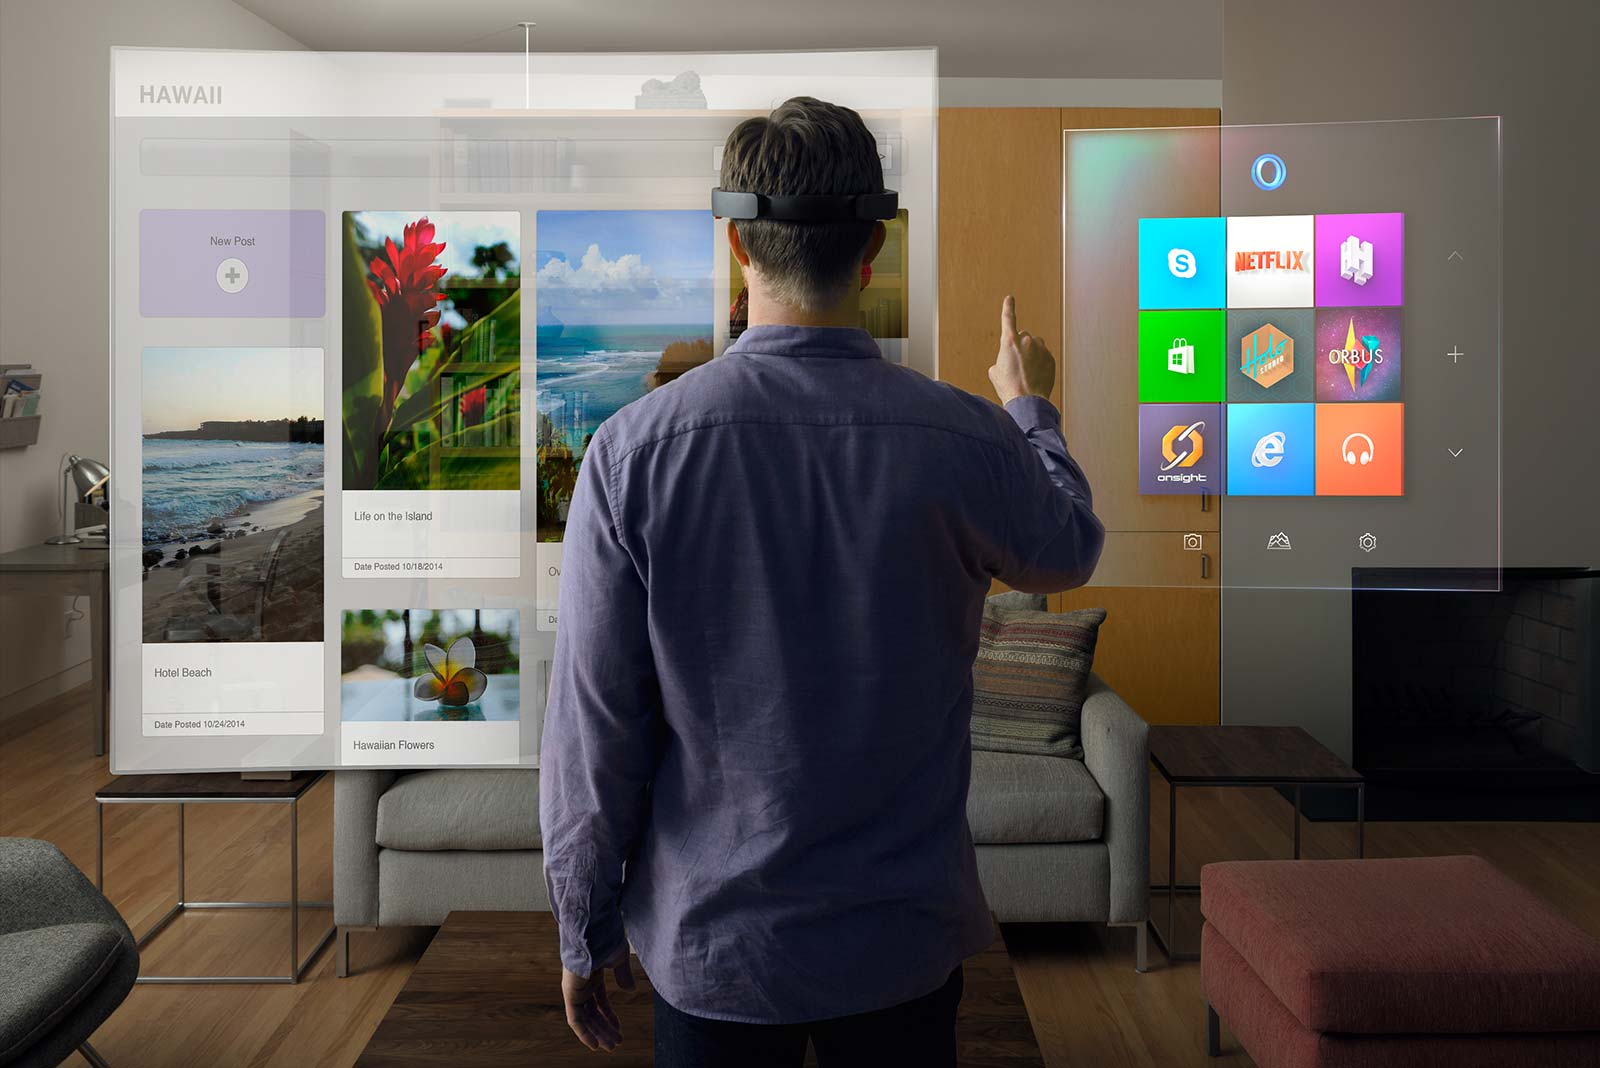 microsoft-hololens-demonstracao-sala-hawaii-novo-post-destaque-blog-geek-publicitario